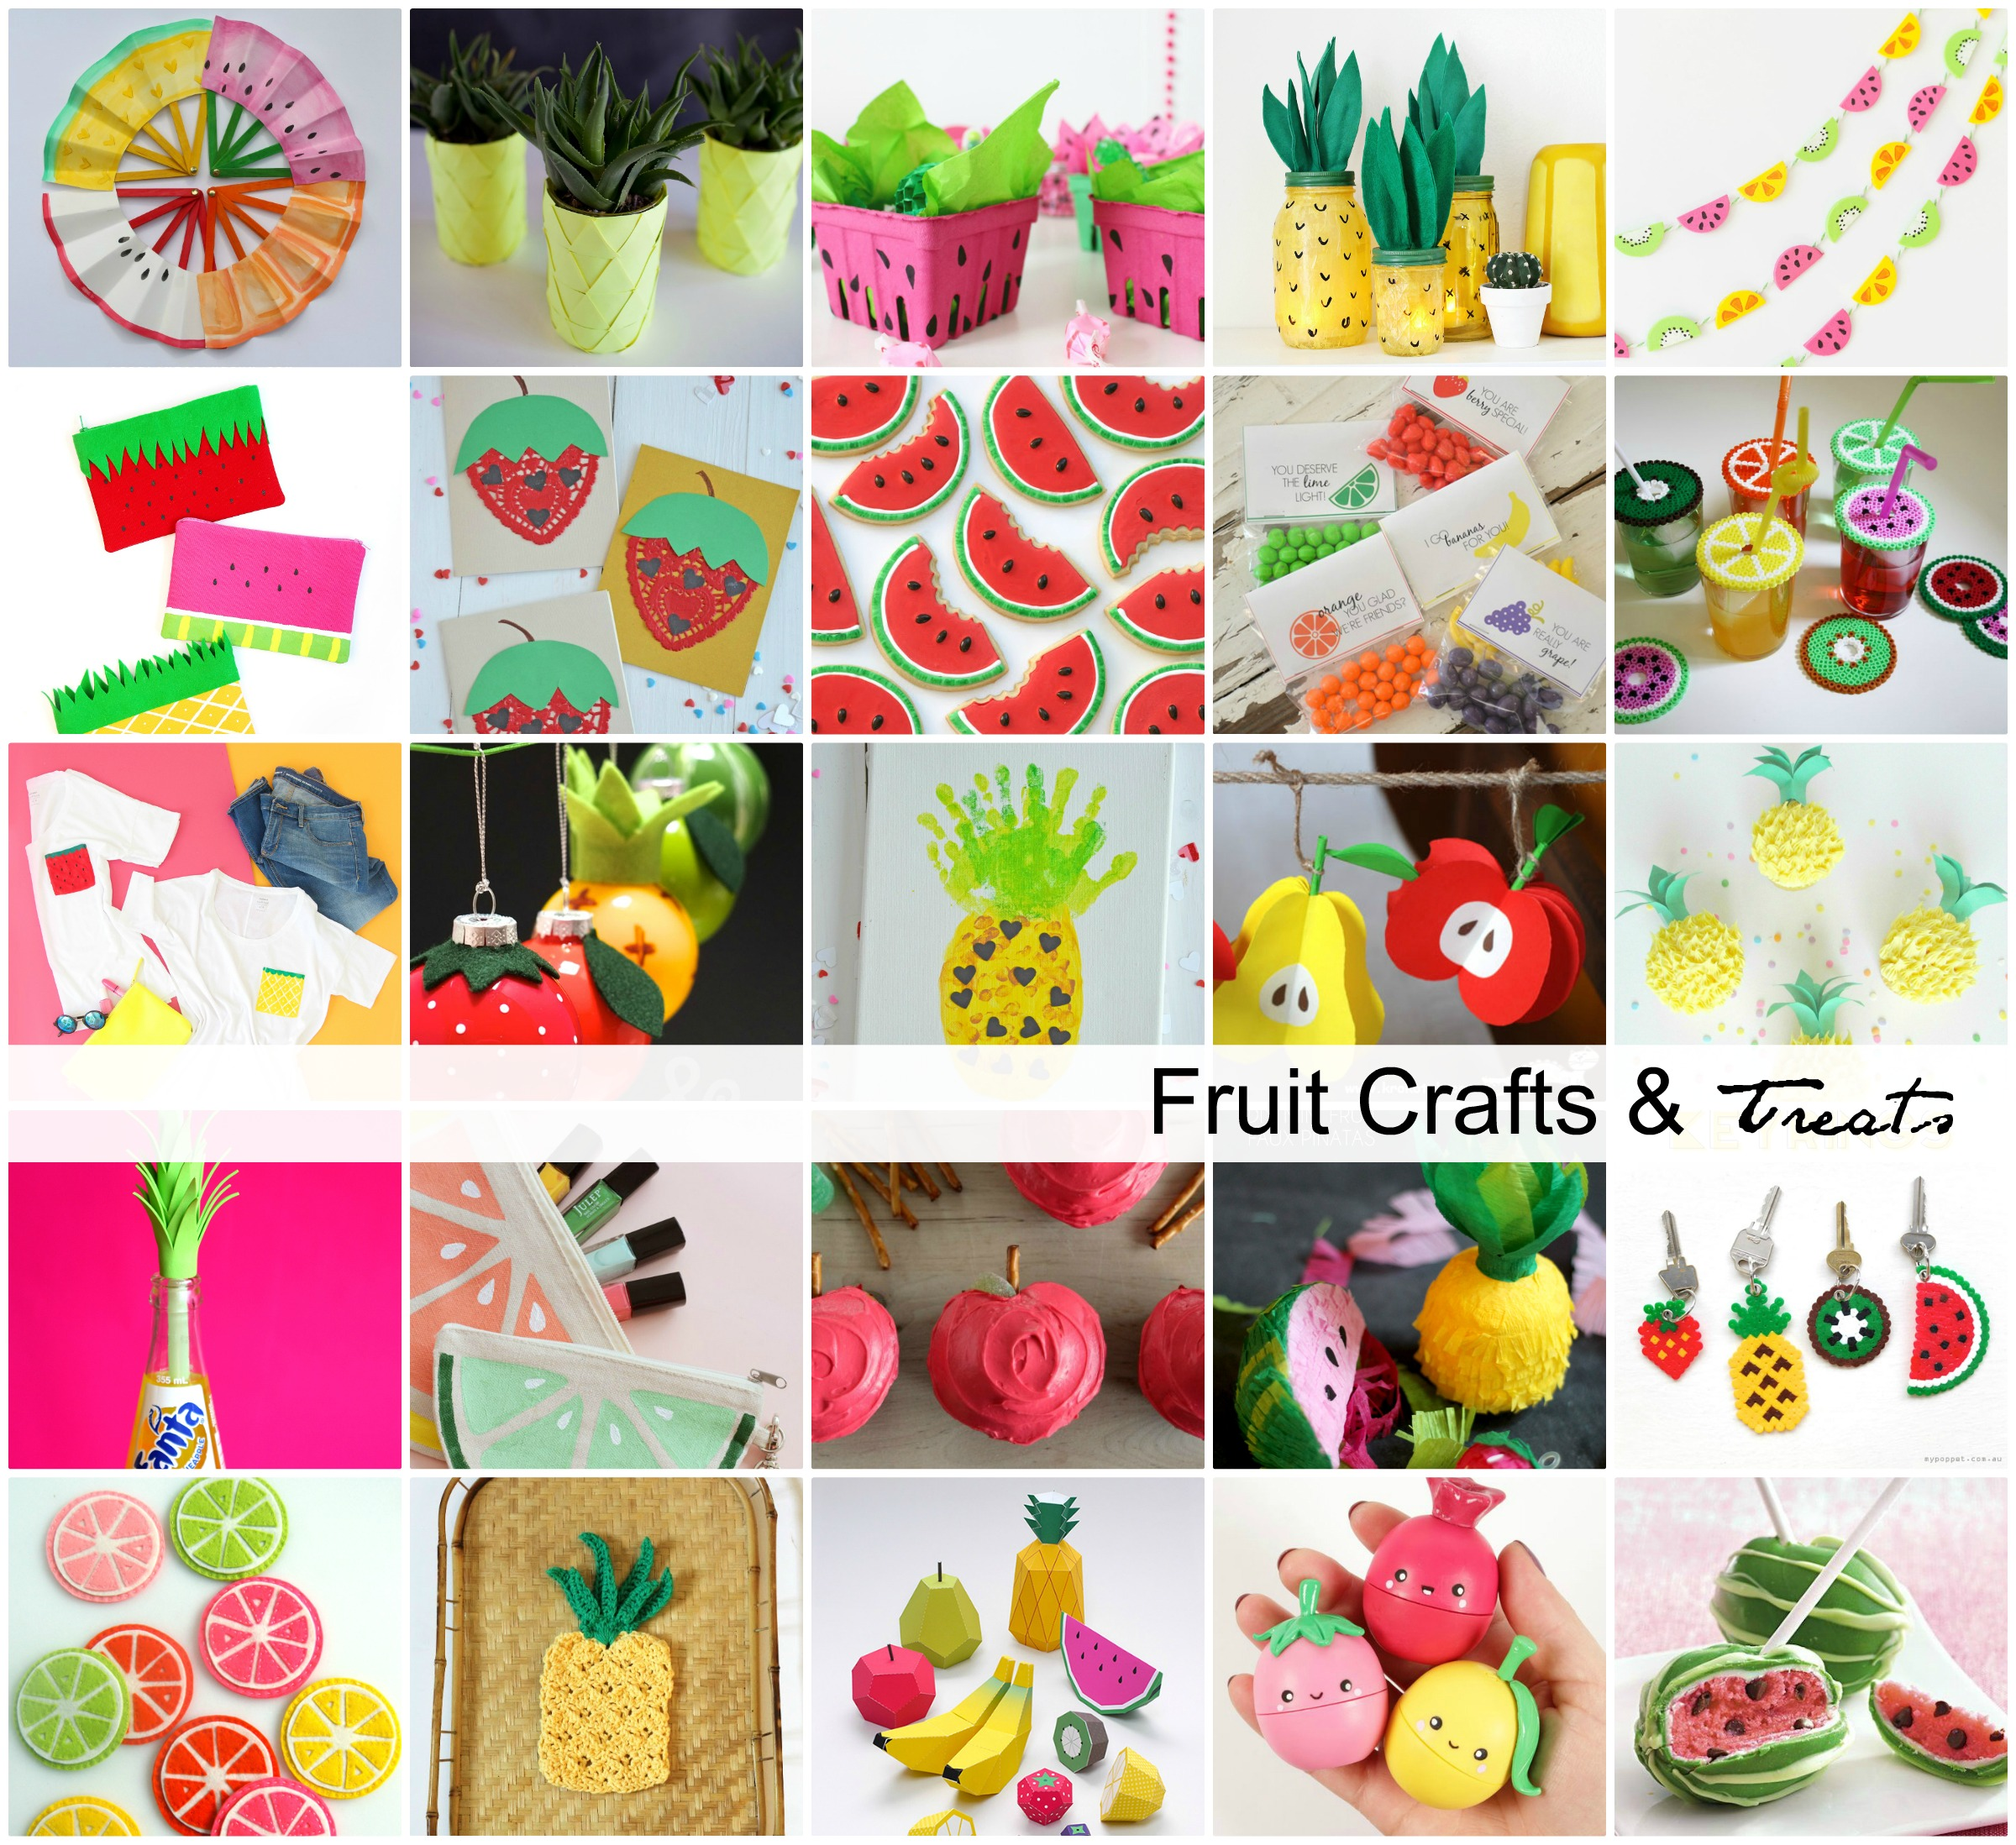 Fruit-Shaped-Crafts-Treats-1